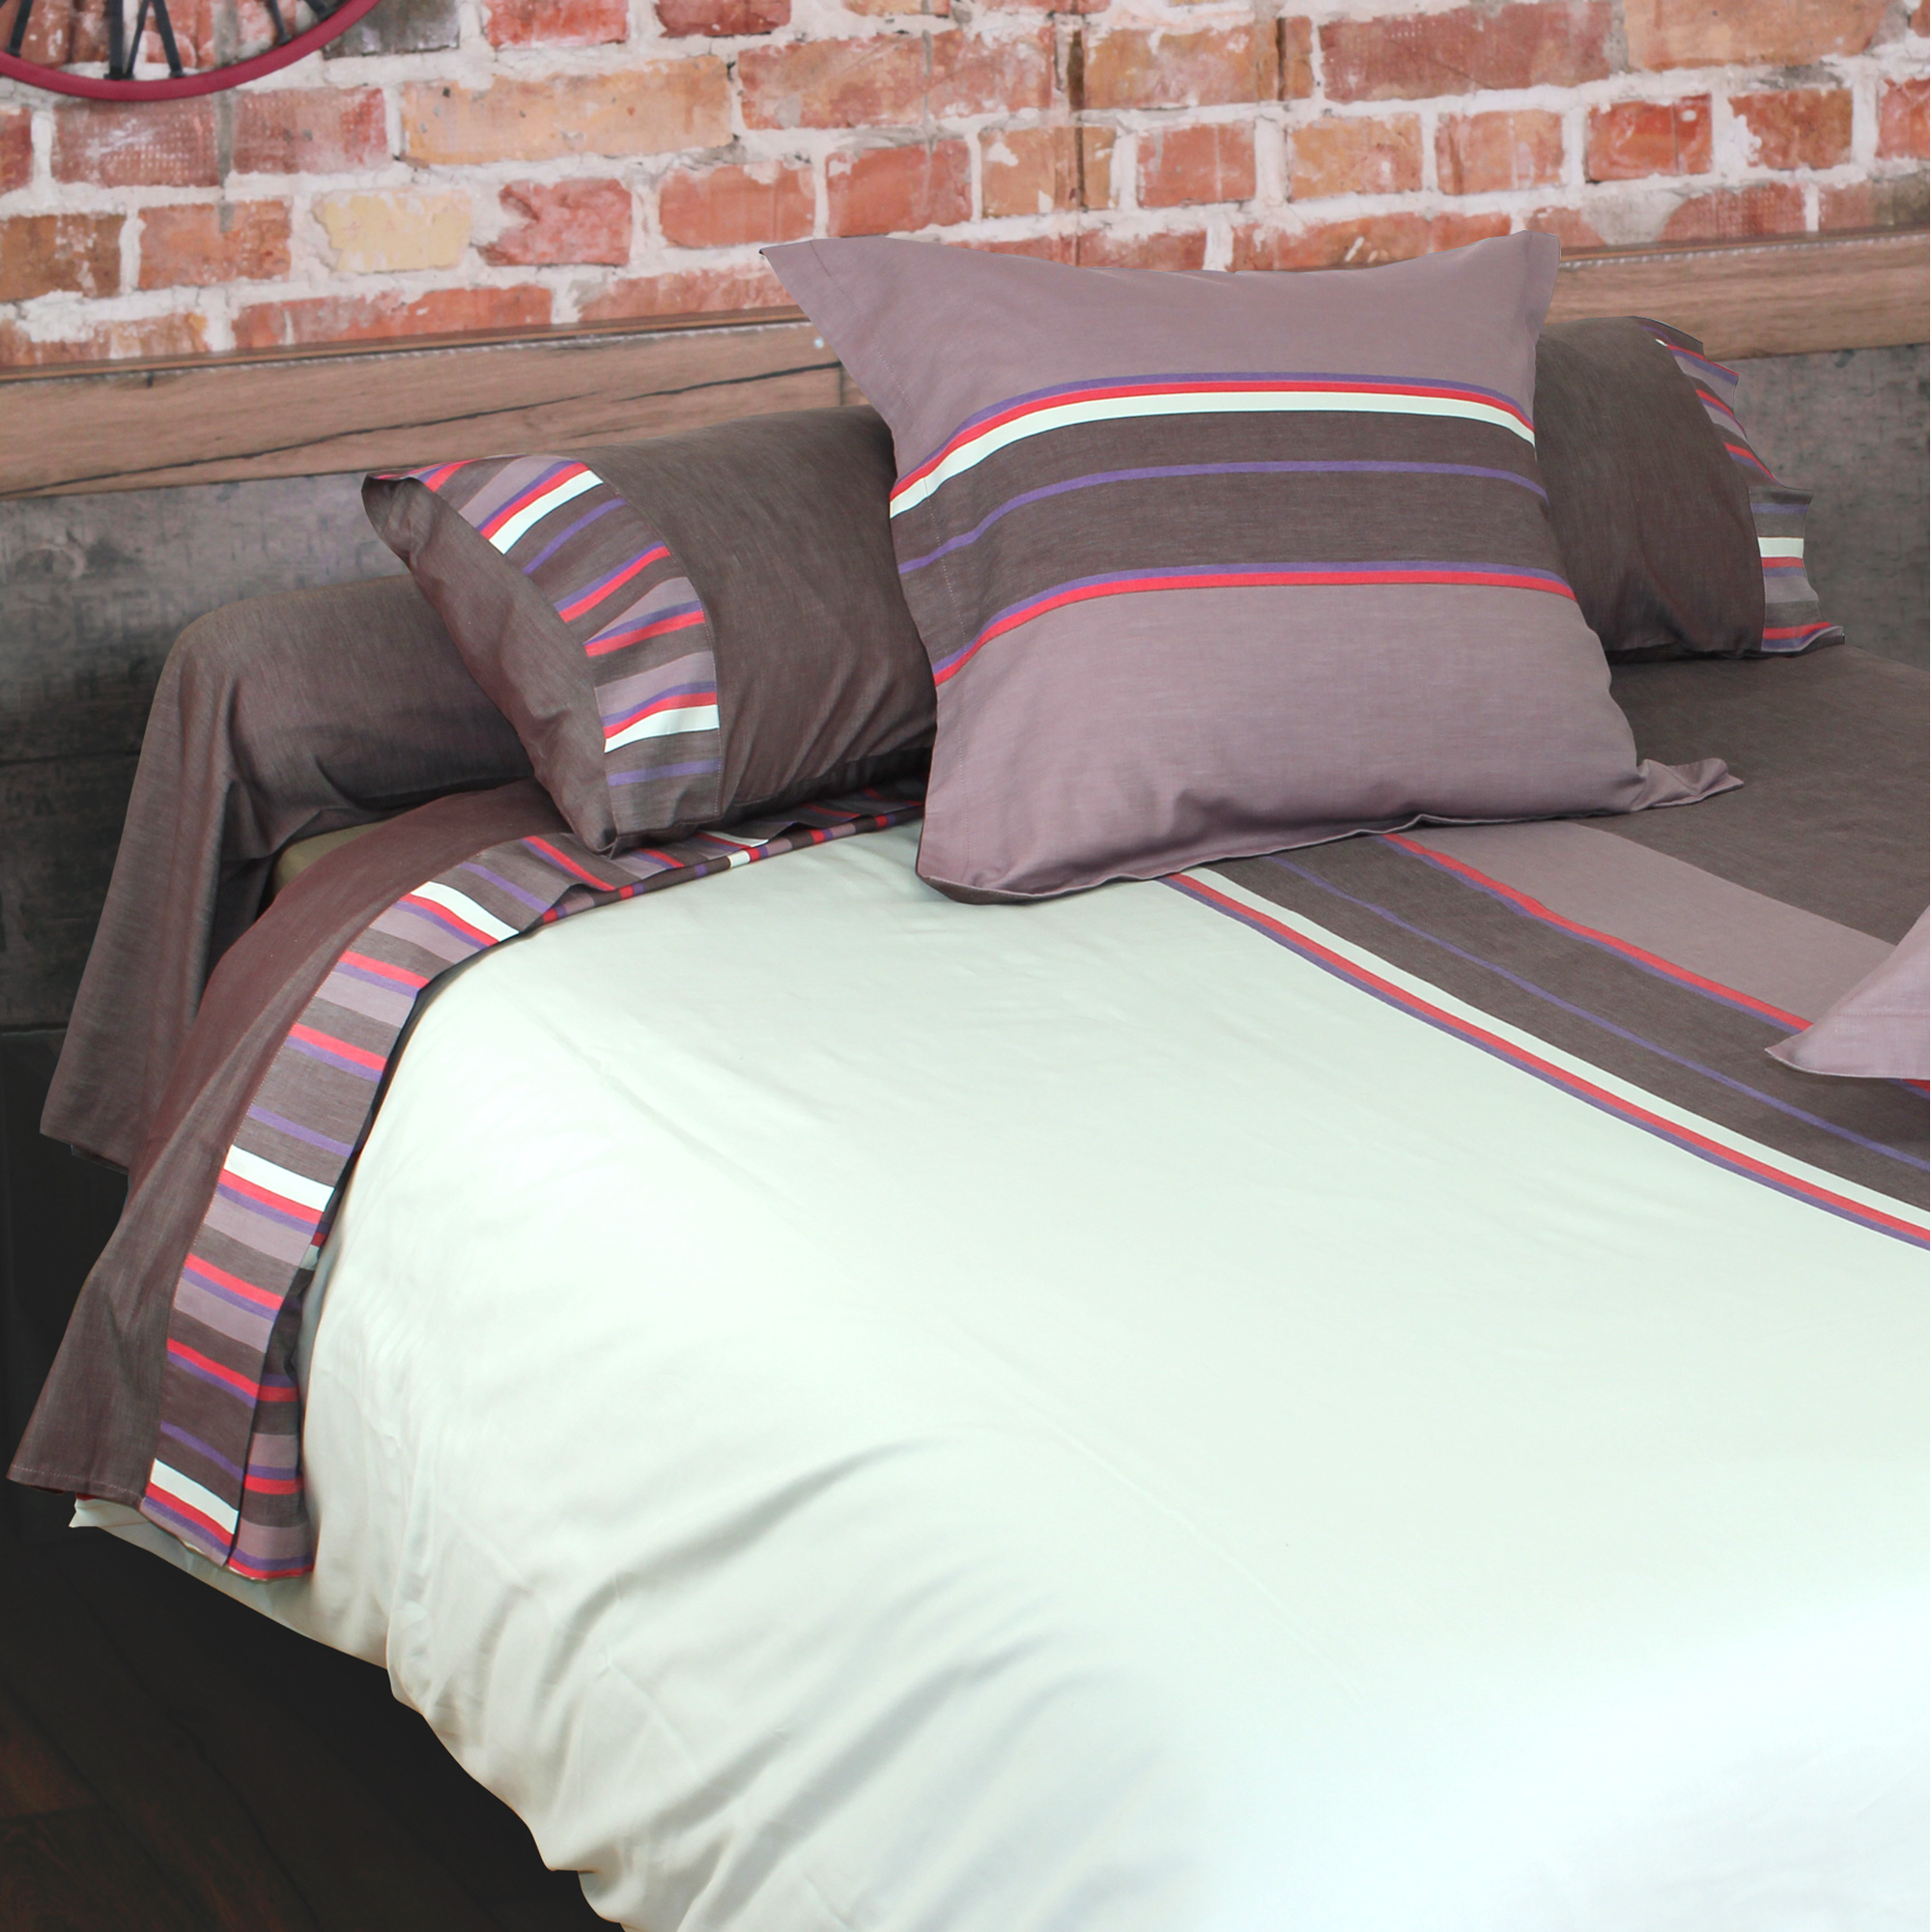 parure de lit 240x220 percale de coton madeleine ebay. Black Bedroom Furniture Sets. Home Design Ideas